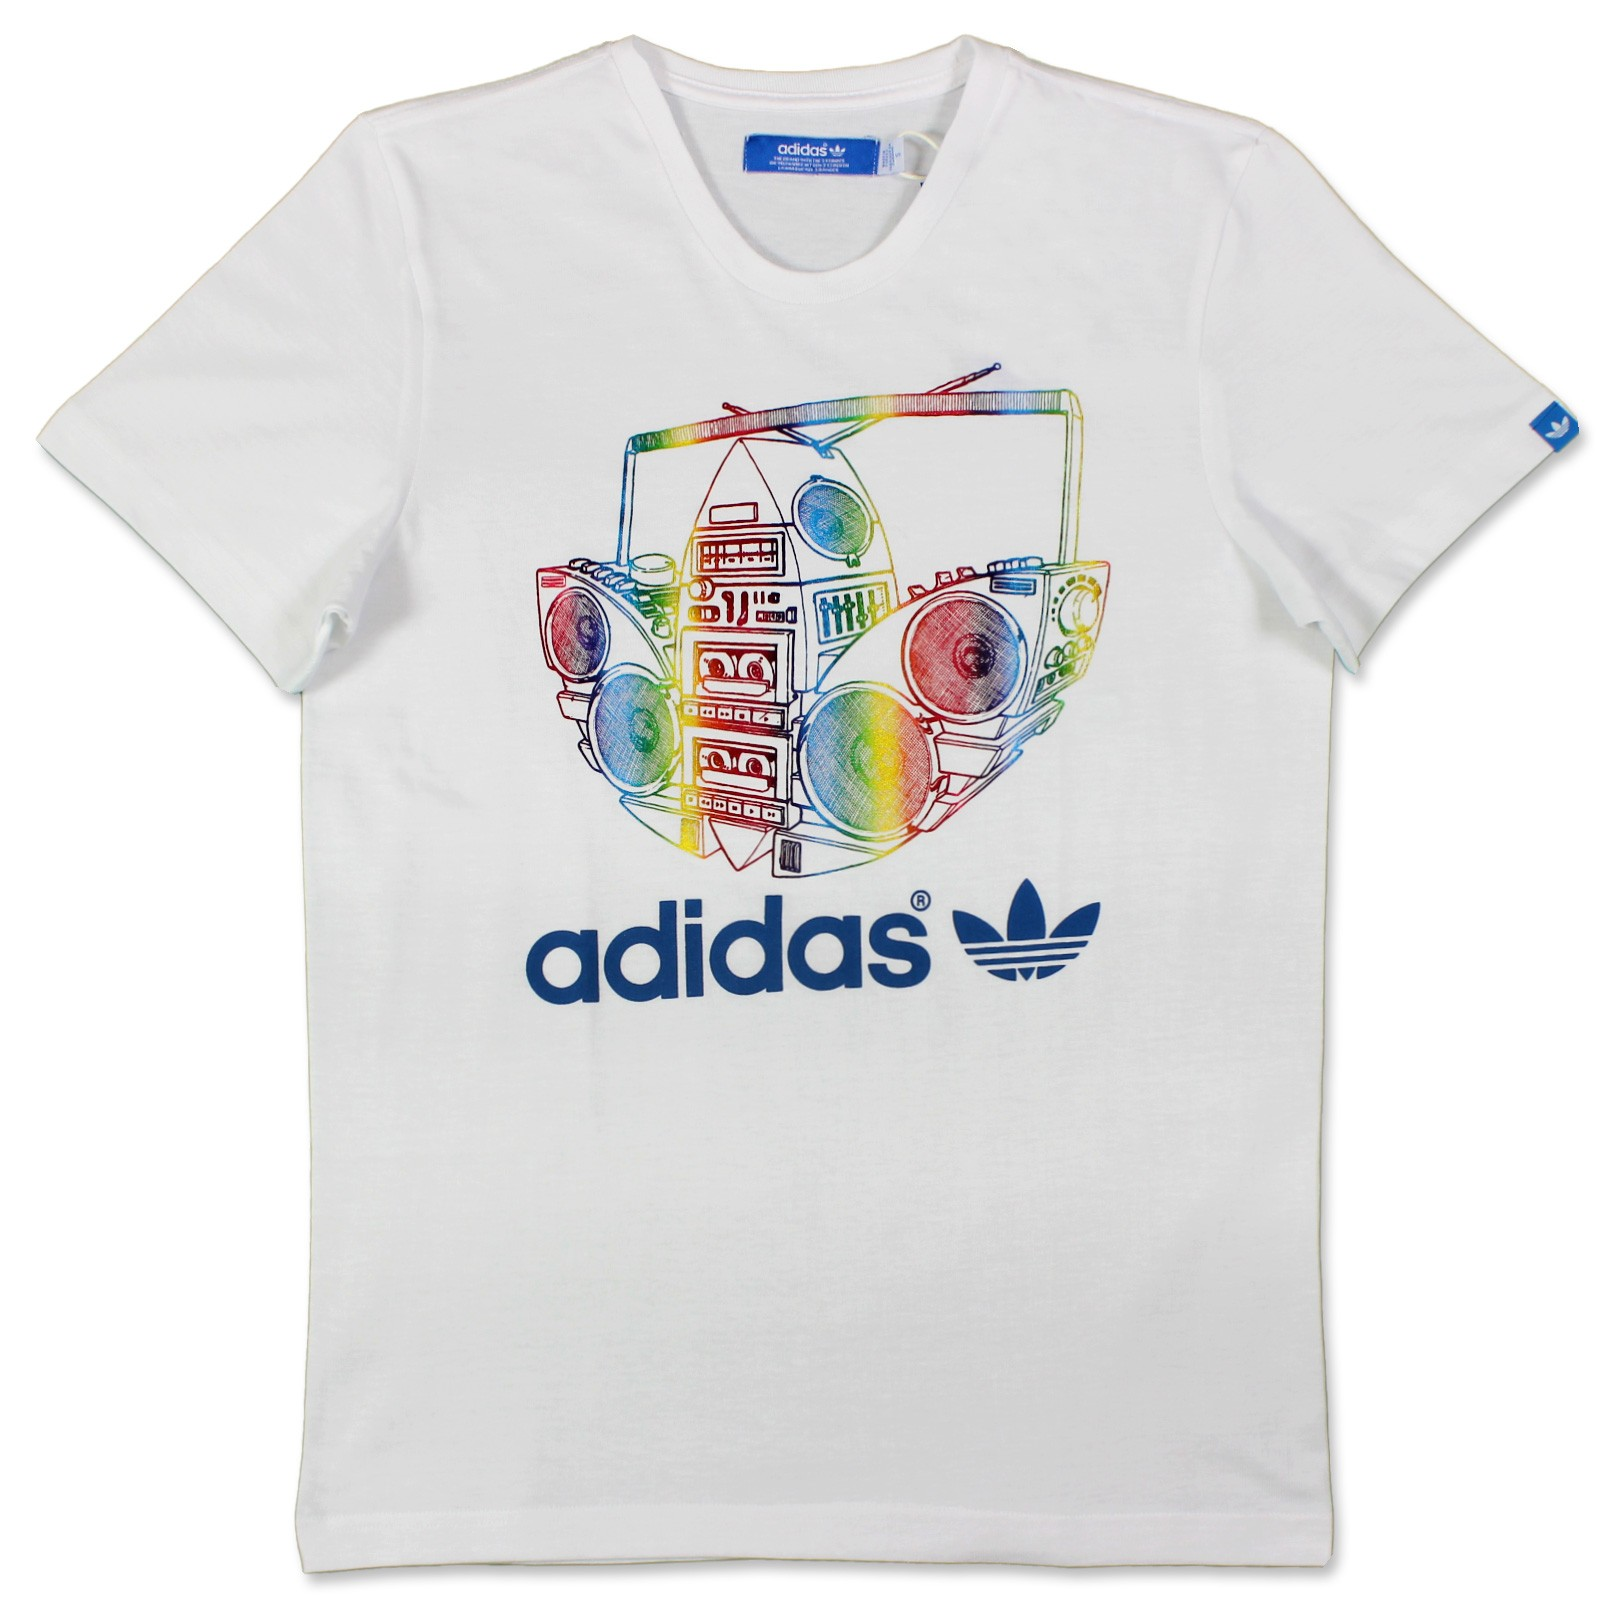 adidas originals boom trefoil party t shirt herren weiss. Black Bedroom Furniture Sets. Home Design Ideas